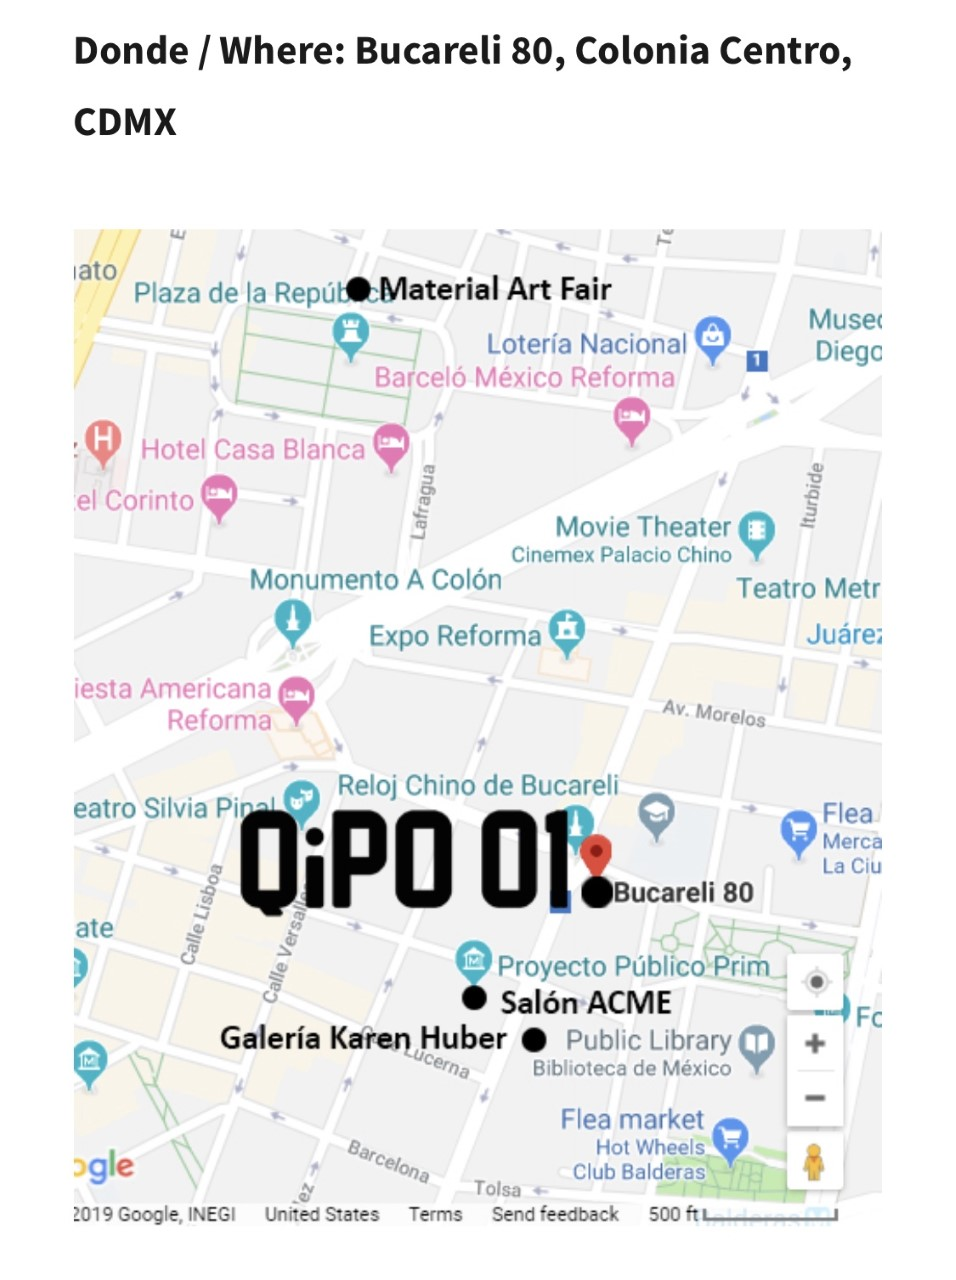 Super excited to announce that to kick off February 2019 we will be showing the incredible work of 7 amazing artists at the first QiPO project iteration in Mexico city. If you are in Mexico for art week stop by Barely 88, Colonia Centro, CDMX Feb 7,8,9 and see works by Carolyn Castaño, Ron Athey, Zeina Baltagi, Thinh Nguyen, Star Montana, Robin Kang, and John Geary. Ck out what people are saying about our project in the links below:   https://www.dondeir.com/cultura/semana-del-arte-2019-zona-maco-material-art-fair-y-salon-acme/2019/01/   Glits : Art Fair Week Guide (among 4 recommended events)   http://www.glits.mx/guia-glits-para-la-semana-del-arte-2019-en-cdmx/    Clasico DMX:   http://www.clasicodmx.mx/primera-edicion-de-qipo-01-ciudad-de-mexico/    Interview with Laura:   http://snn.imer.gob.mx/laferia/2019/01/29/abrir-espacios-y-abrirse-a-otros-publicos-qipo-01/   Event Listing:   https://www.evensi.com/qipo-01-mexico-city-bucareli-80-centro-06010-cuauhtemoc-cdmx-exico/286296684   https://thehappening.com/happening/qipo-01/2019-02-07/   http://gastv.mx/qipo-01-primera-edicion-de-intervencion-de-espacios/